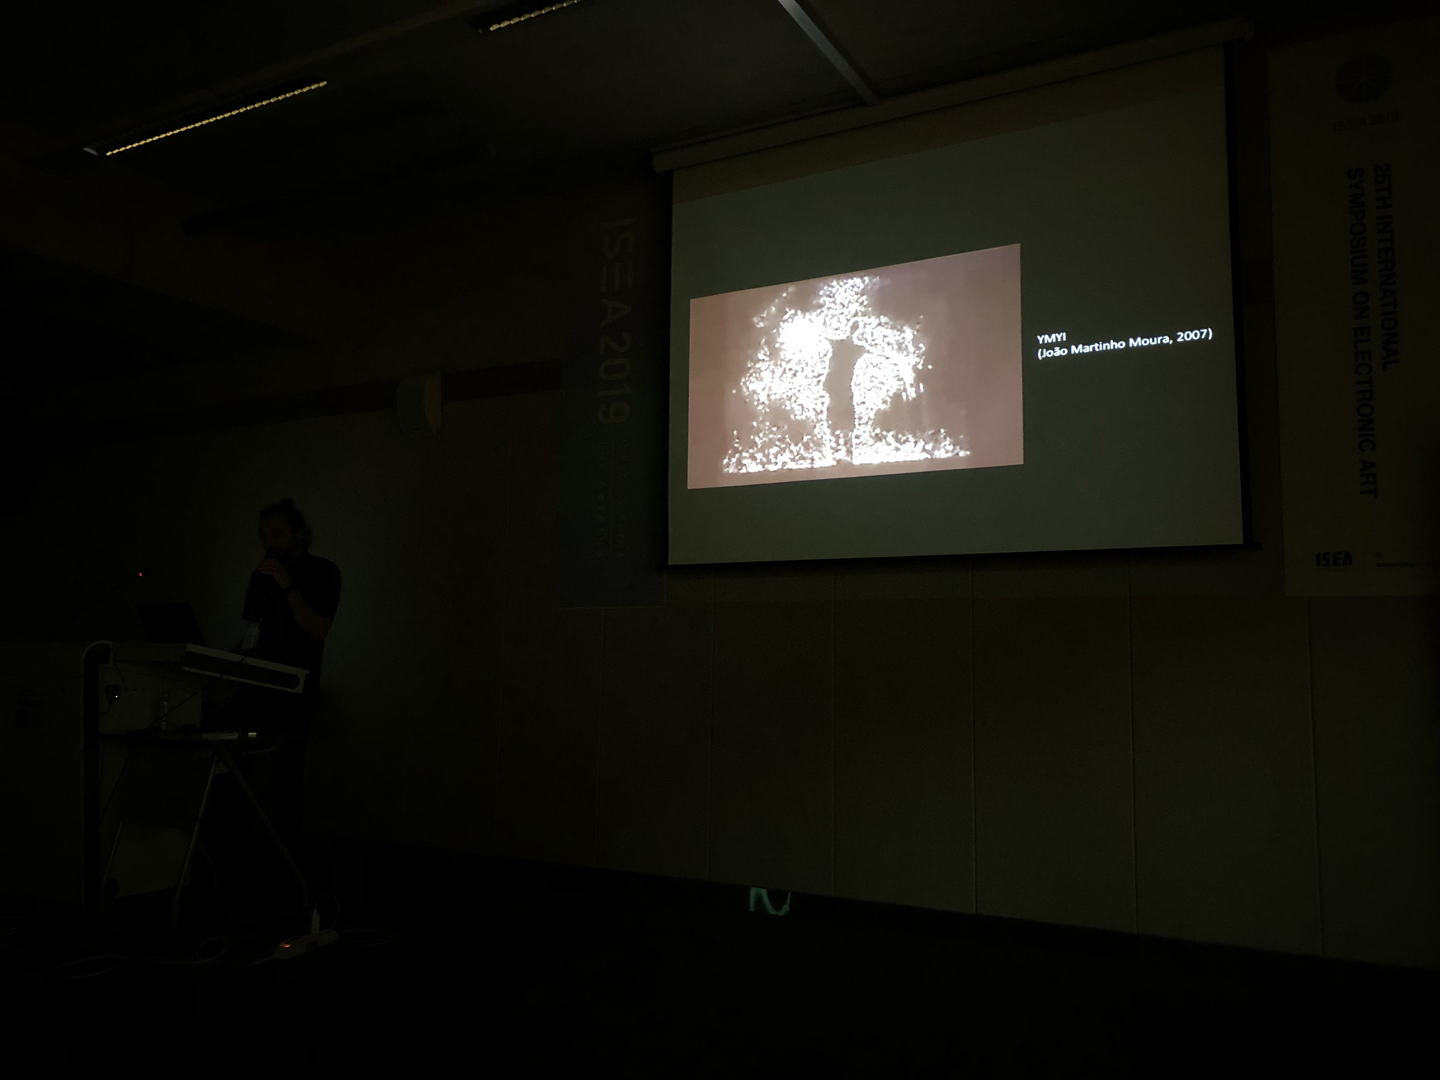 ©ISEA2019: 25th International Symposium on Electronic Art, Né Barros, Paulo Ferreira-Lopes, and João Martinho Moura, From Real to Virtual Embodied Performance: A Case Study Between Dance and Technology